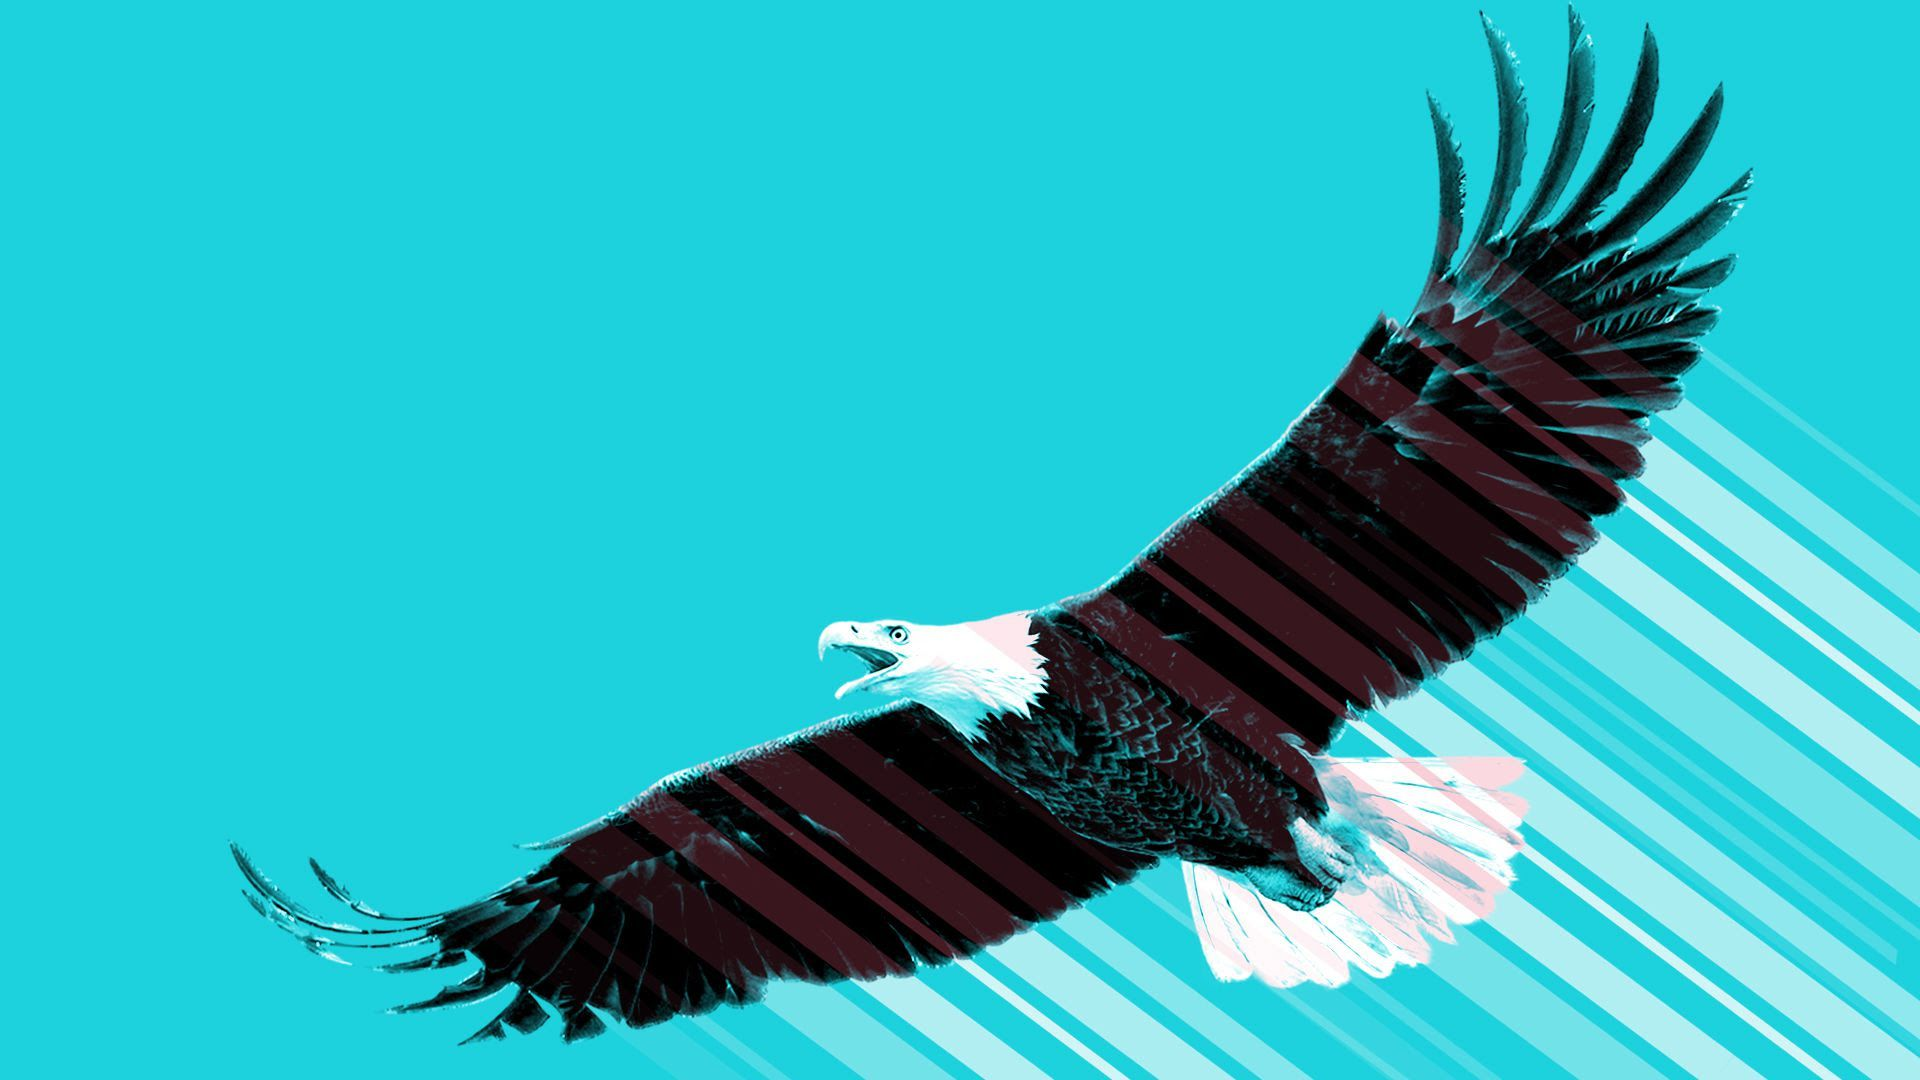 Illustration of eagle flying on blue background.